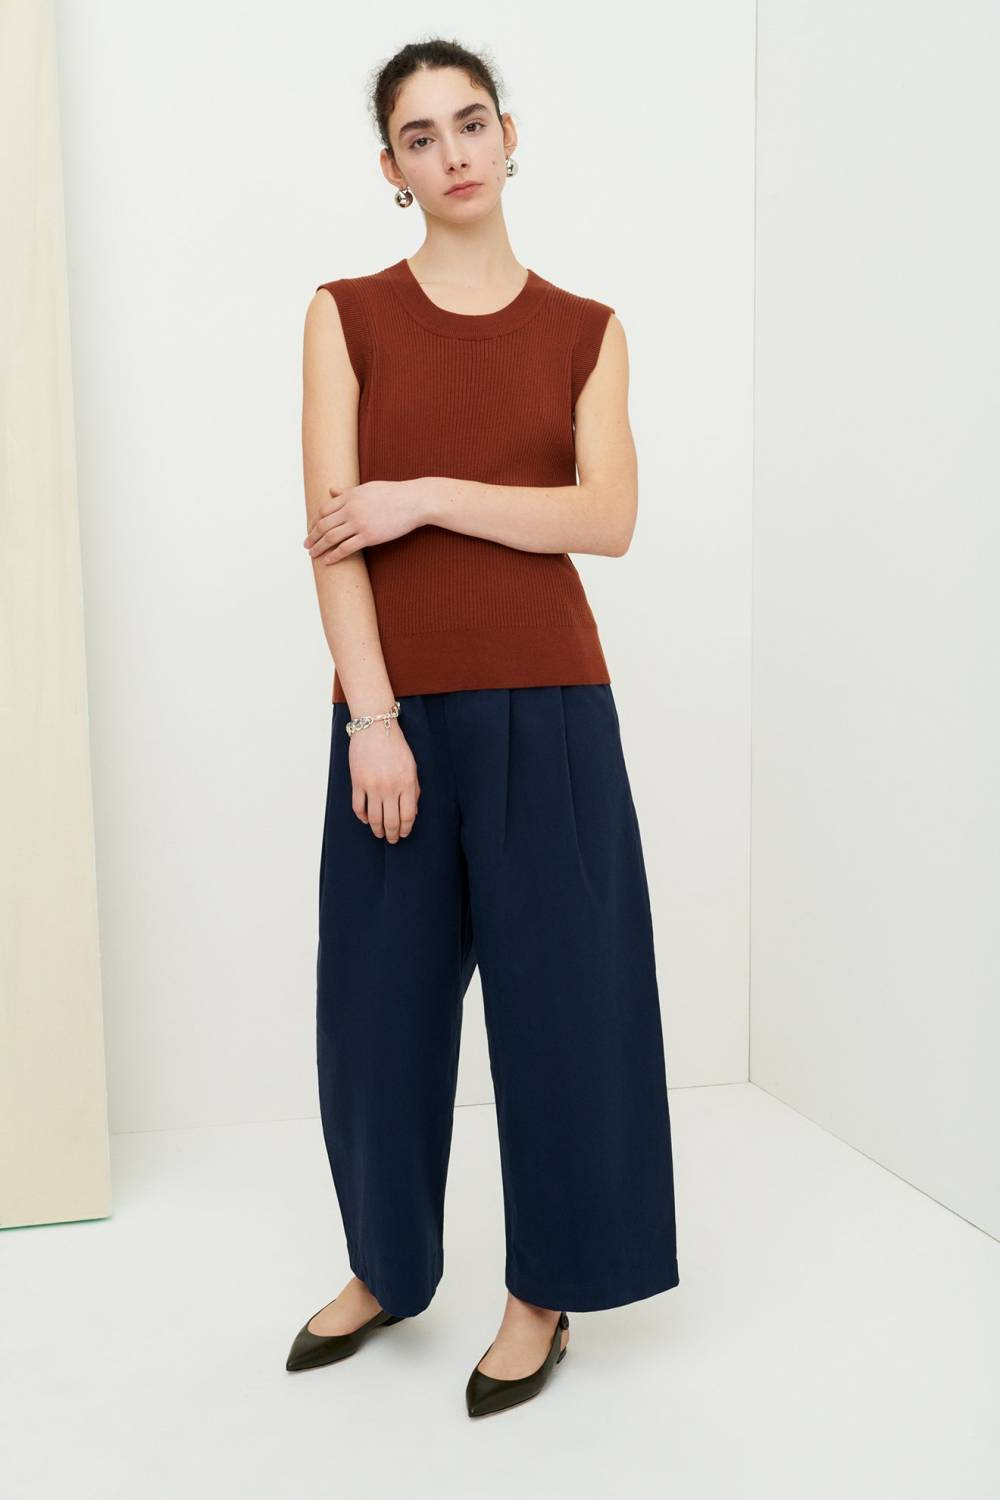 kowtow ethical sustainable clothing new zealand